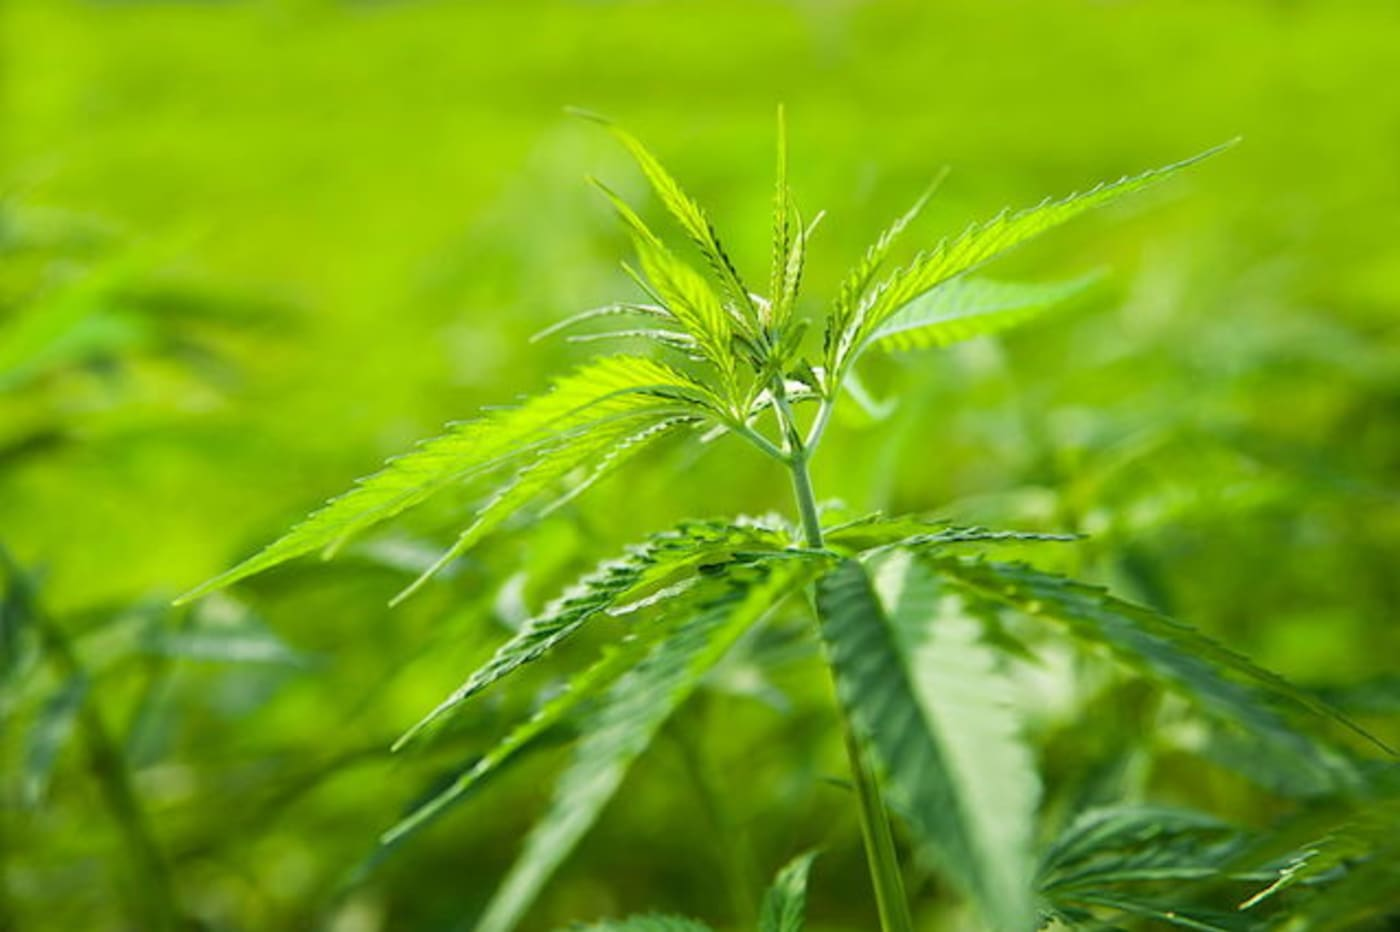 This is a picture of weed.